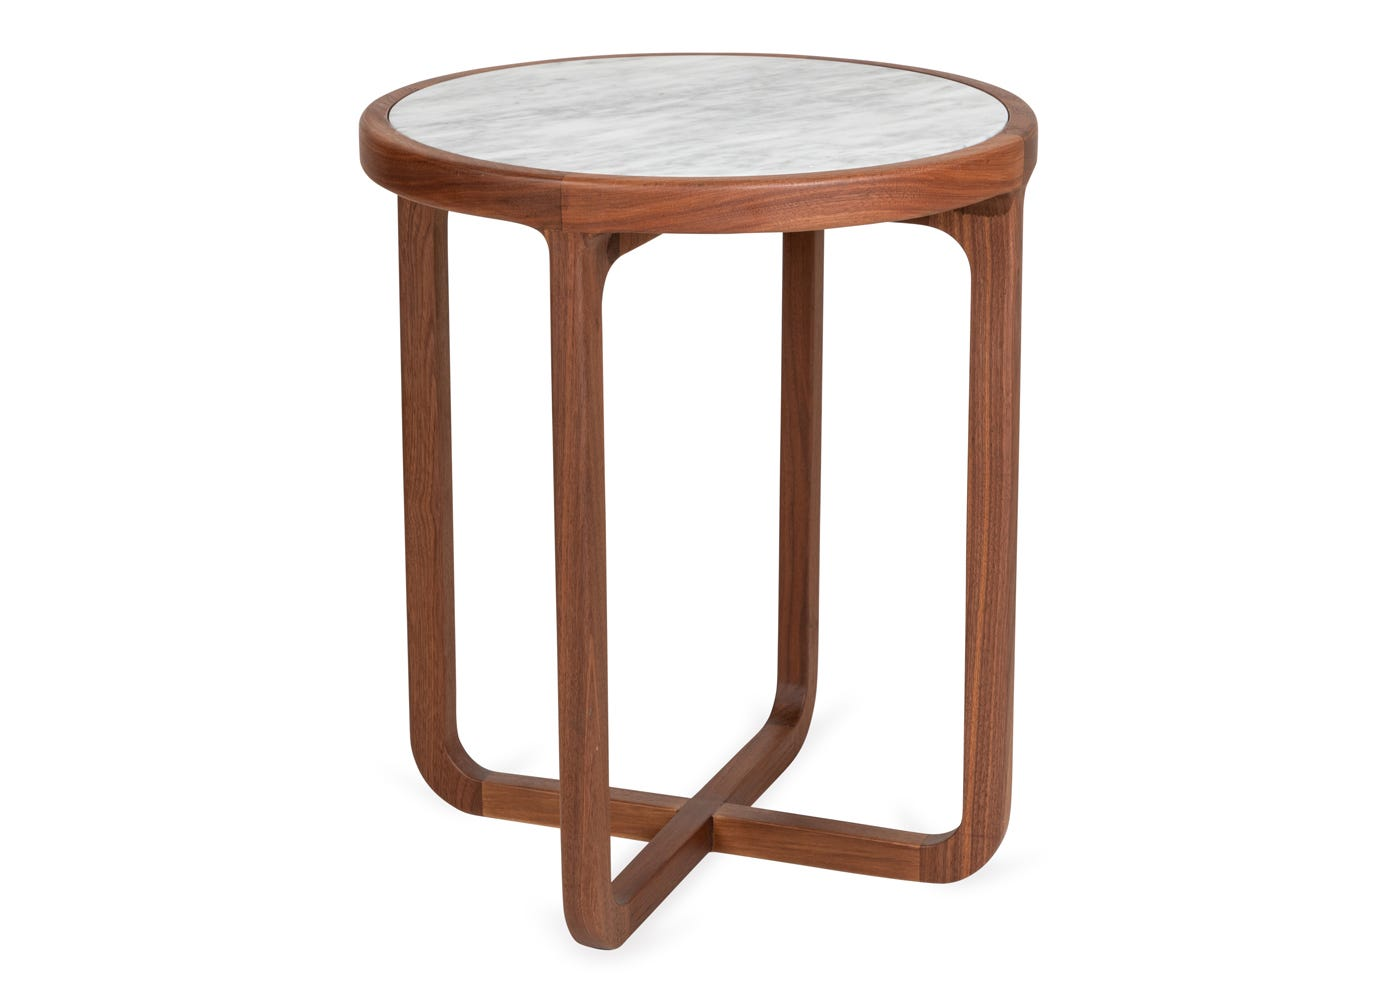 As shown: Anais side table.